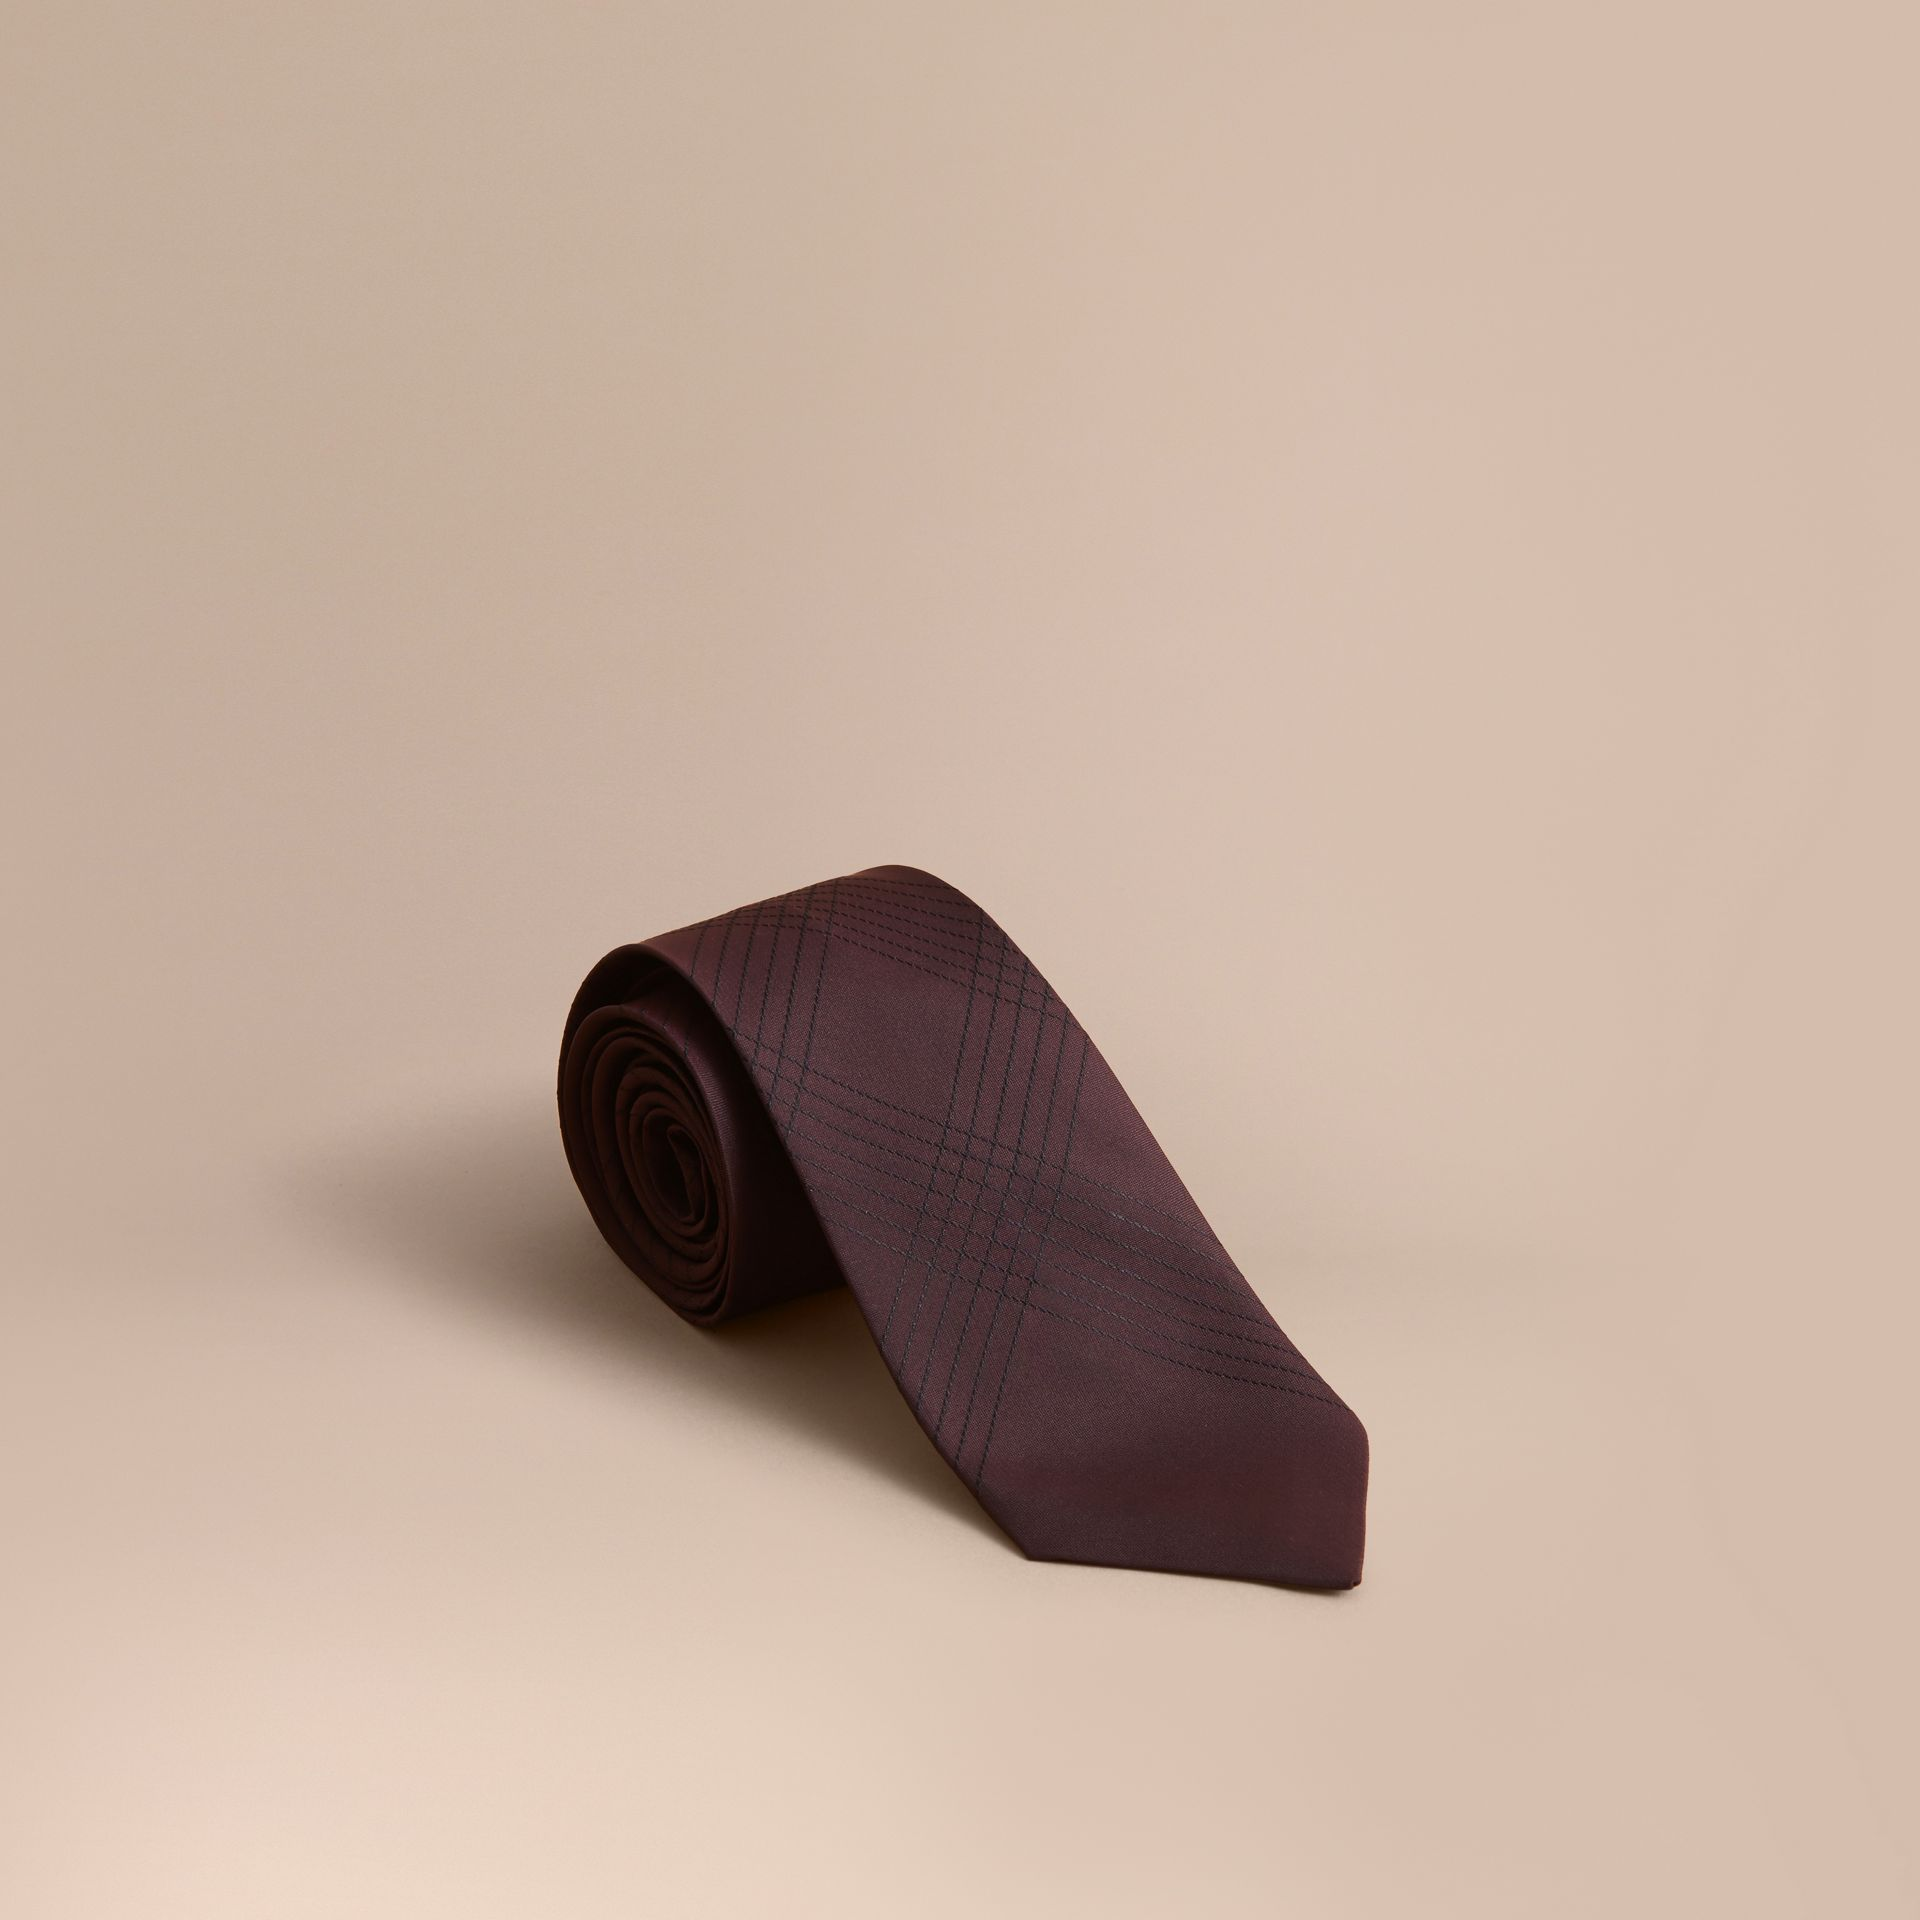 Modern Cut Topstitched Check Silk Tie in Burgundy - Men | Burberry Singapore - gallery image 1